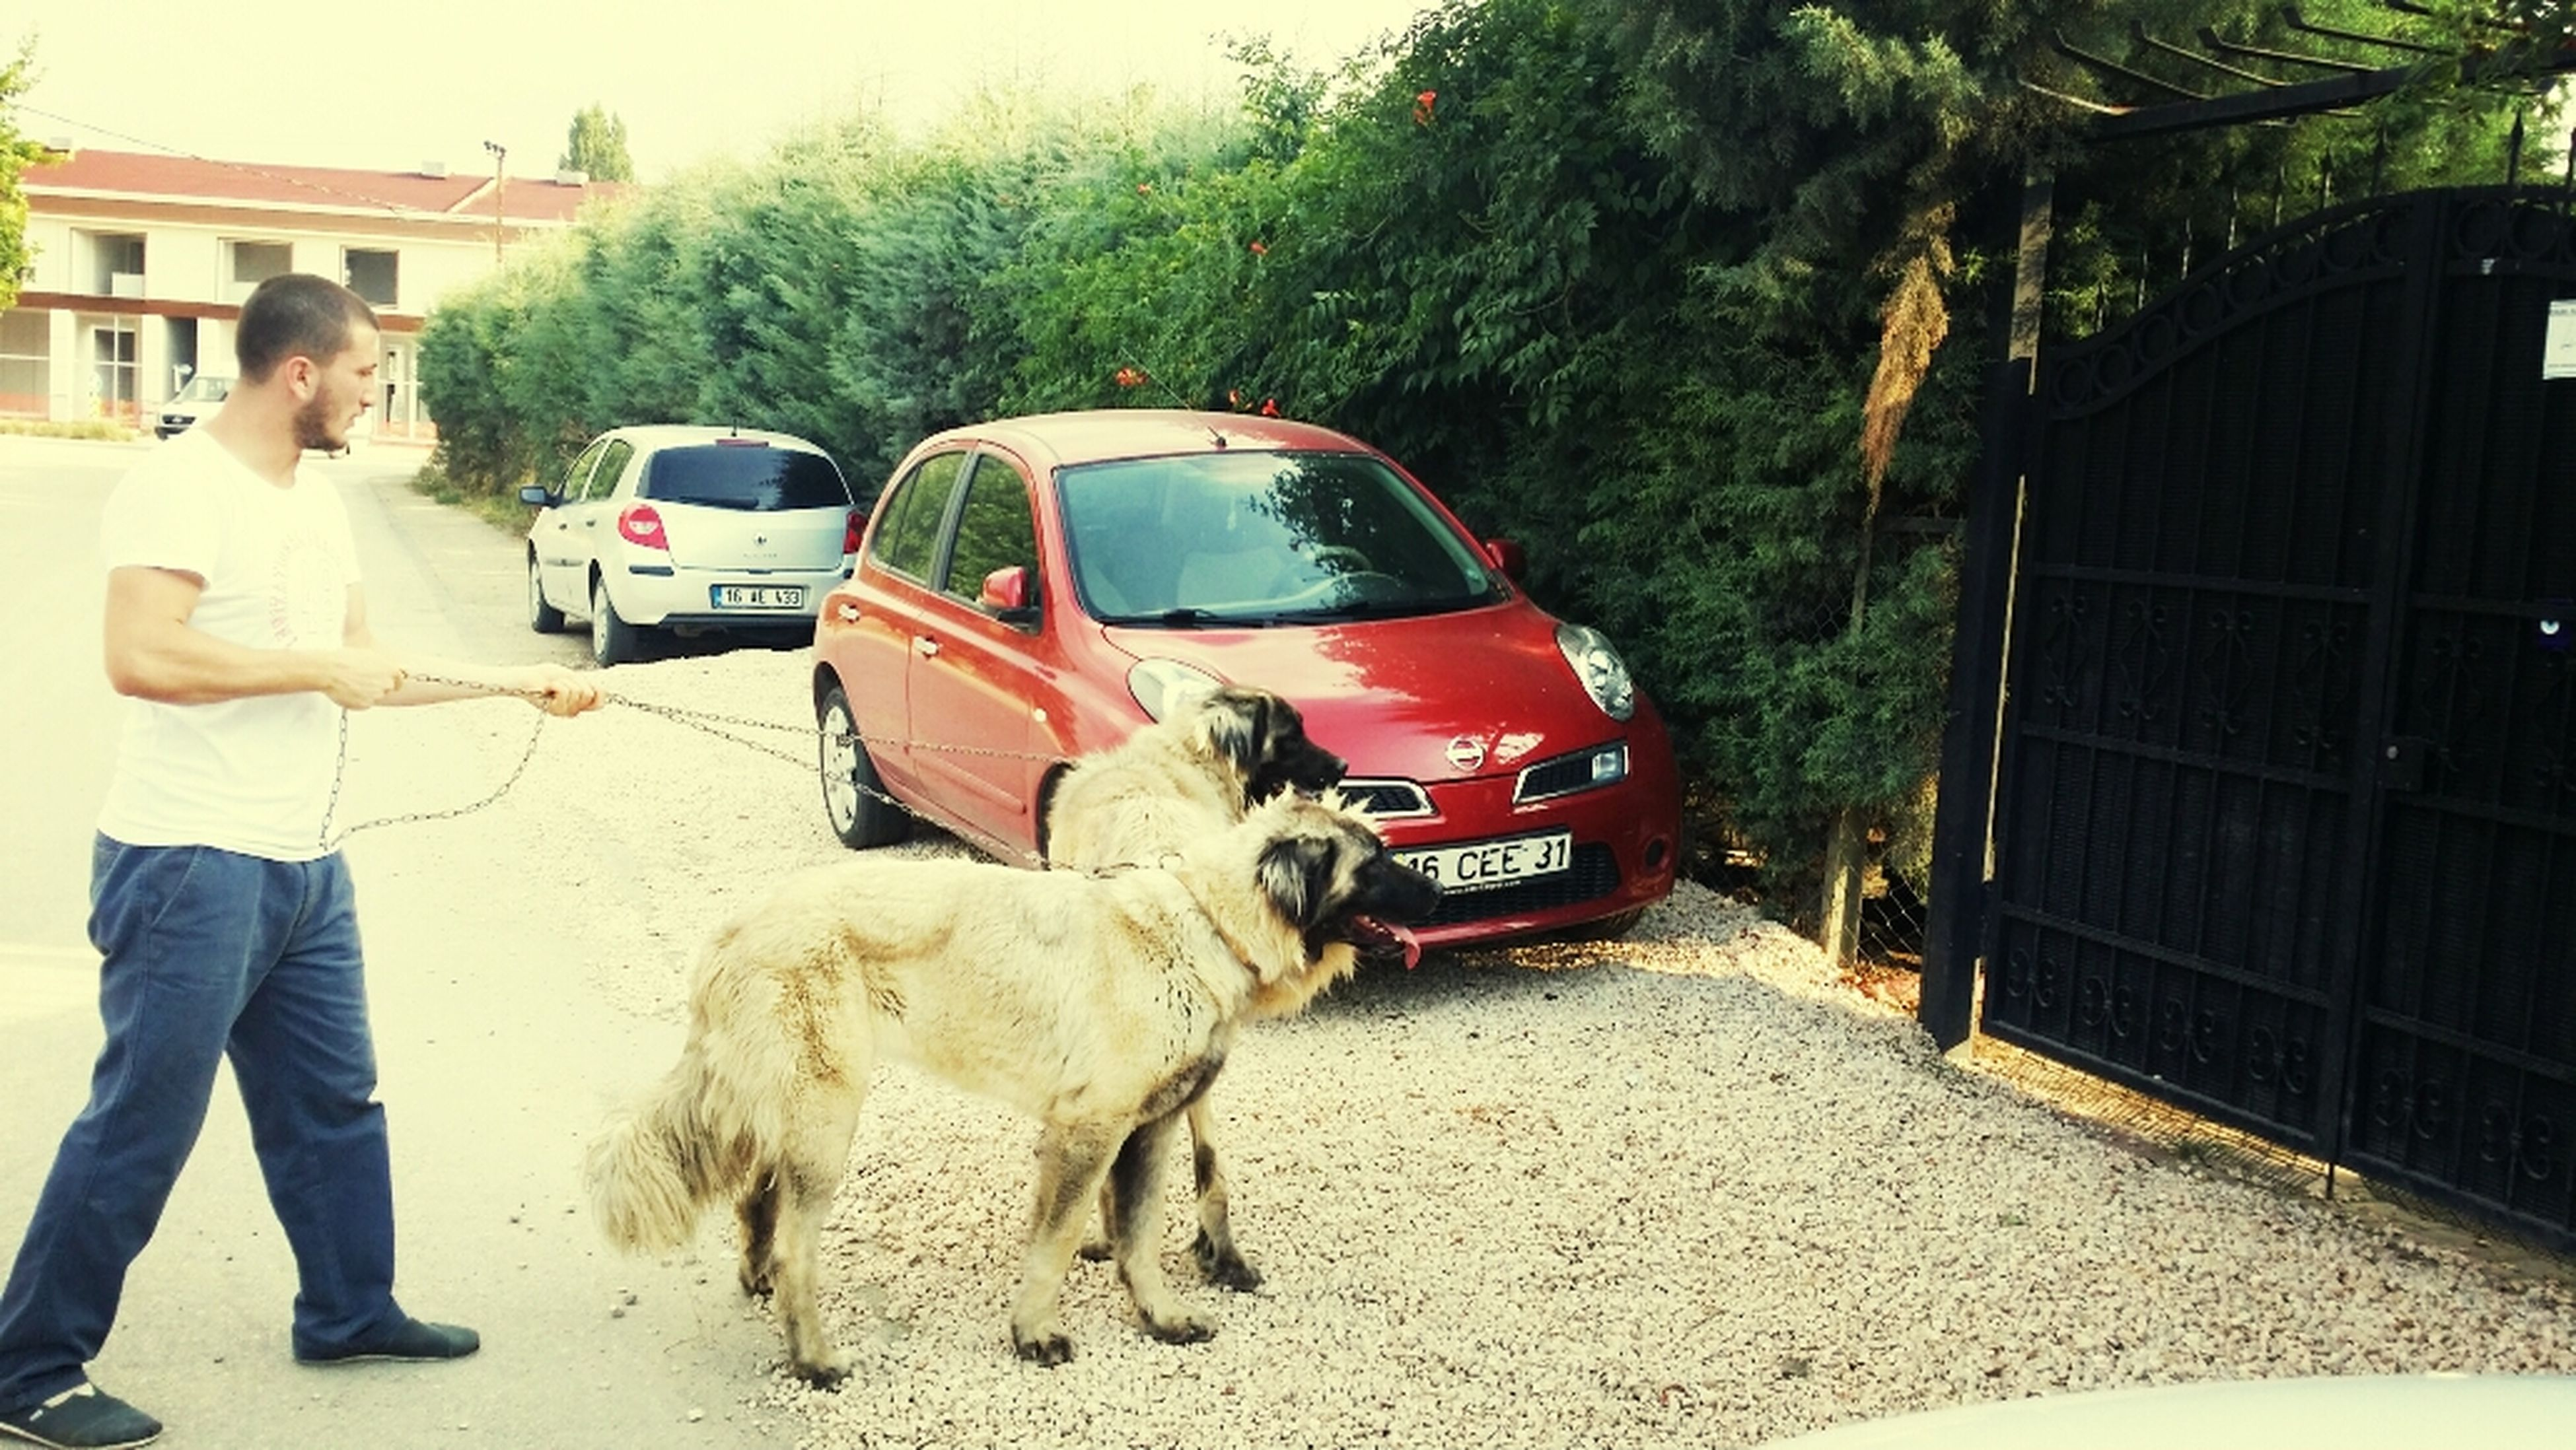 domestic animals, mammal, animal themes, transportation, one animal, dog, pets, mode of transport, land vehicle, building exterior, street, built structure, tree, architecture, men, full length, walking, car, rear view